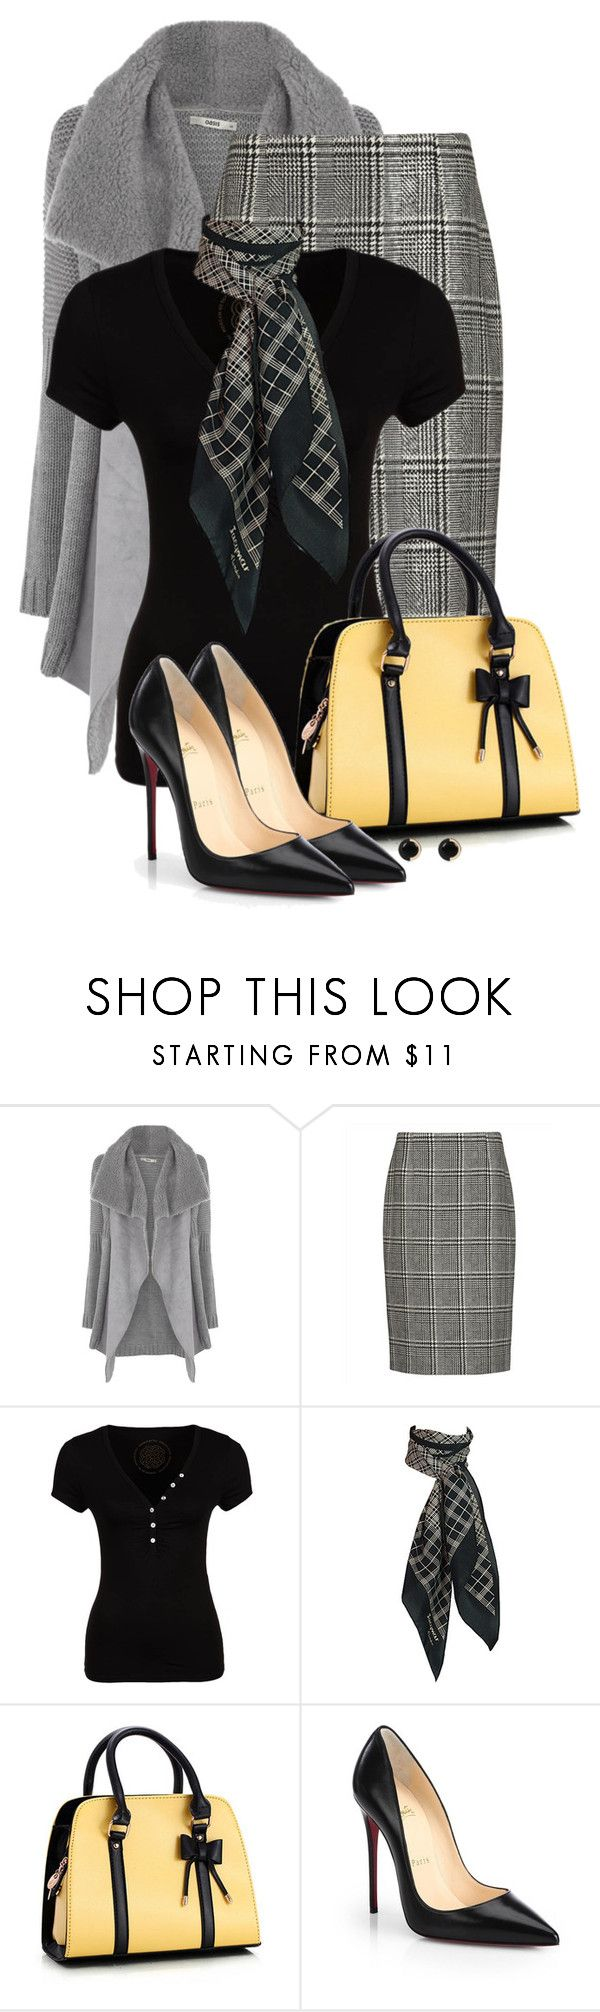 """""""Princess of Wales"""" by eilselrenrag ❤ liked on Polyvore featuring Oasis, Jaeger, Morgan, Christian Louboutin and River Island"""